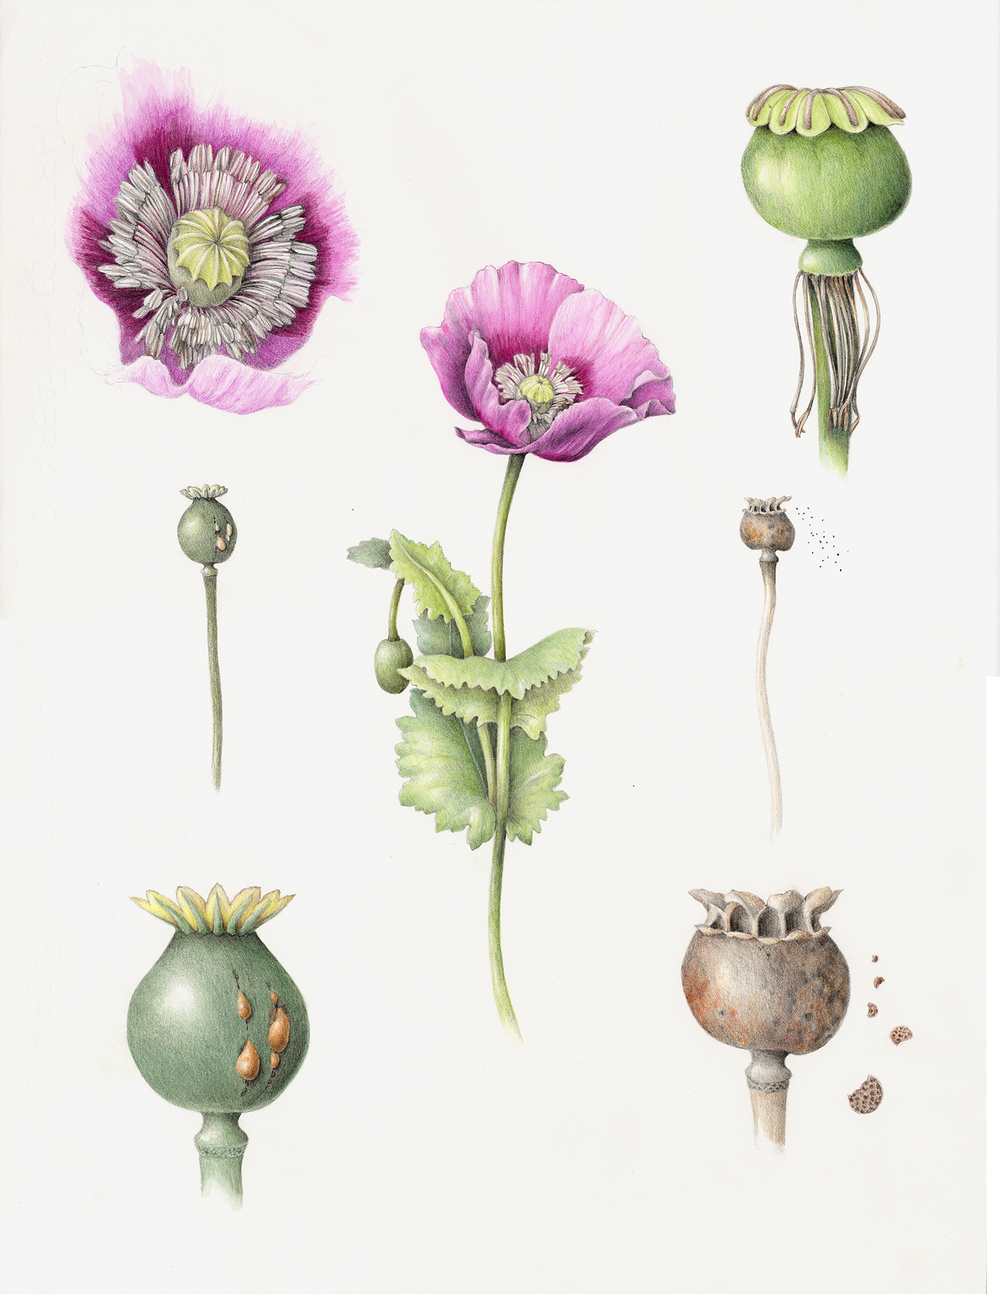 Poppy - Papaver somniferum